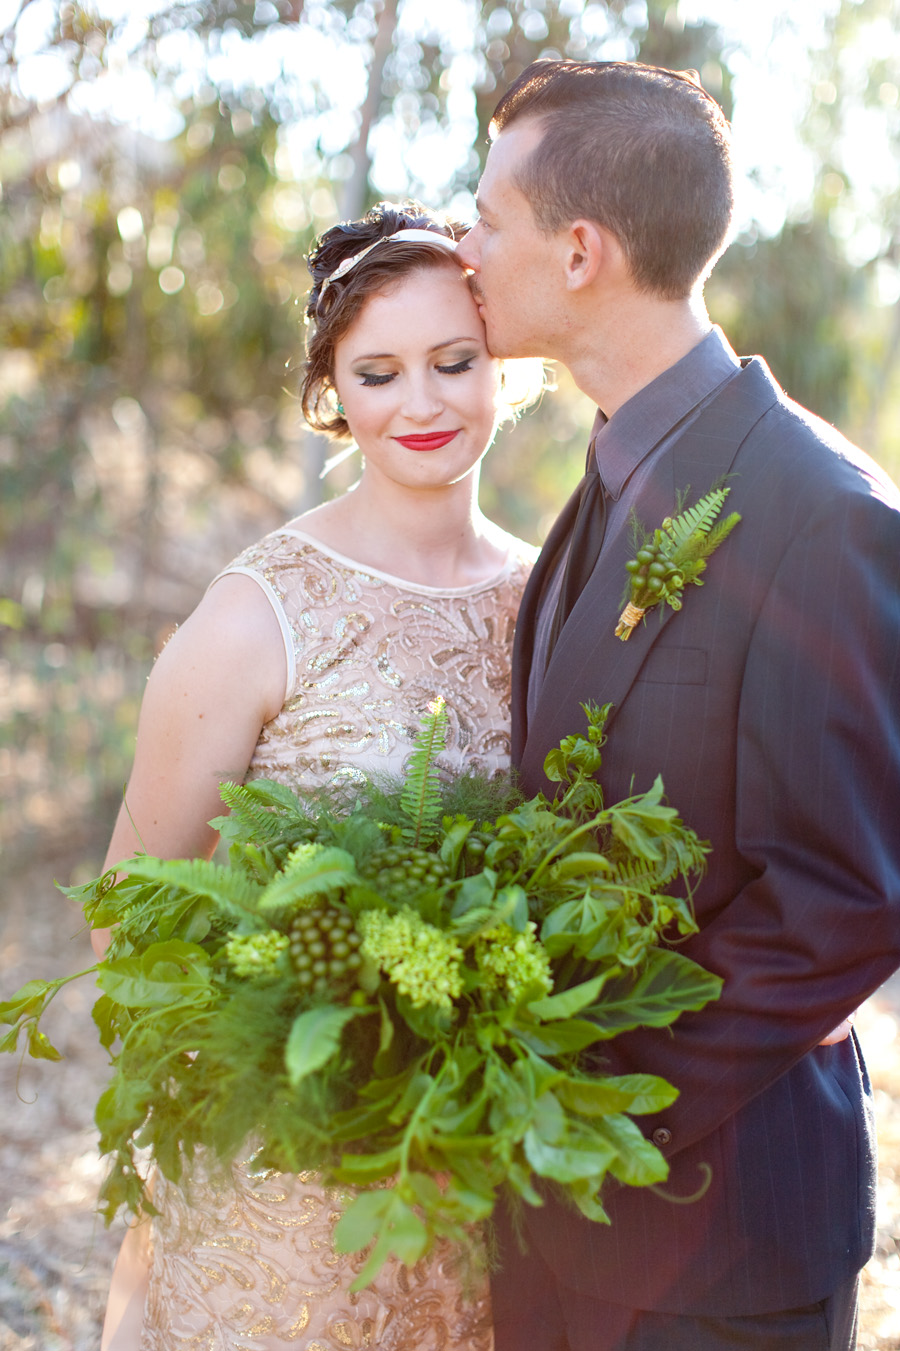 Green & gold bohemian bridal bouquet by San Diego florist, Compass Floral.